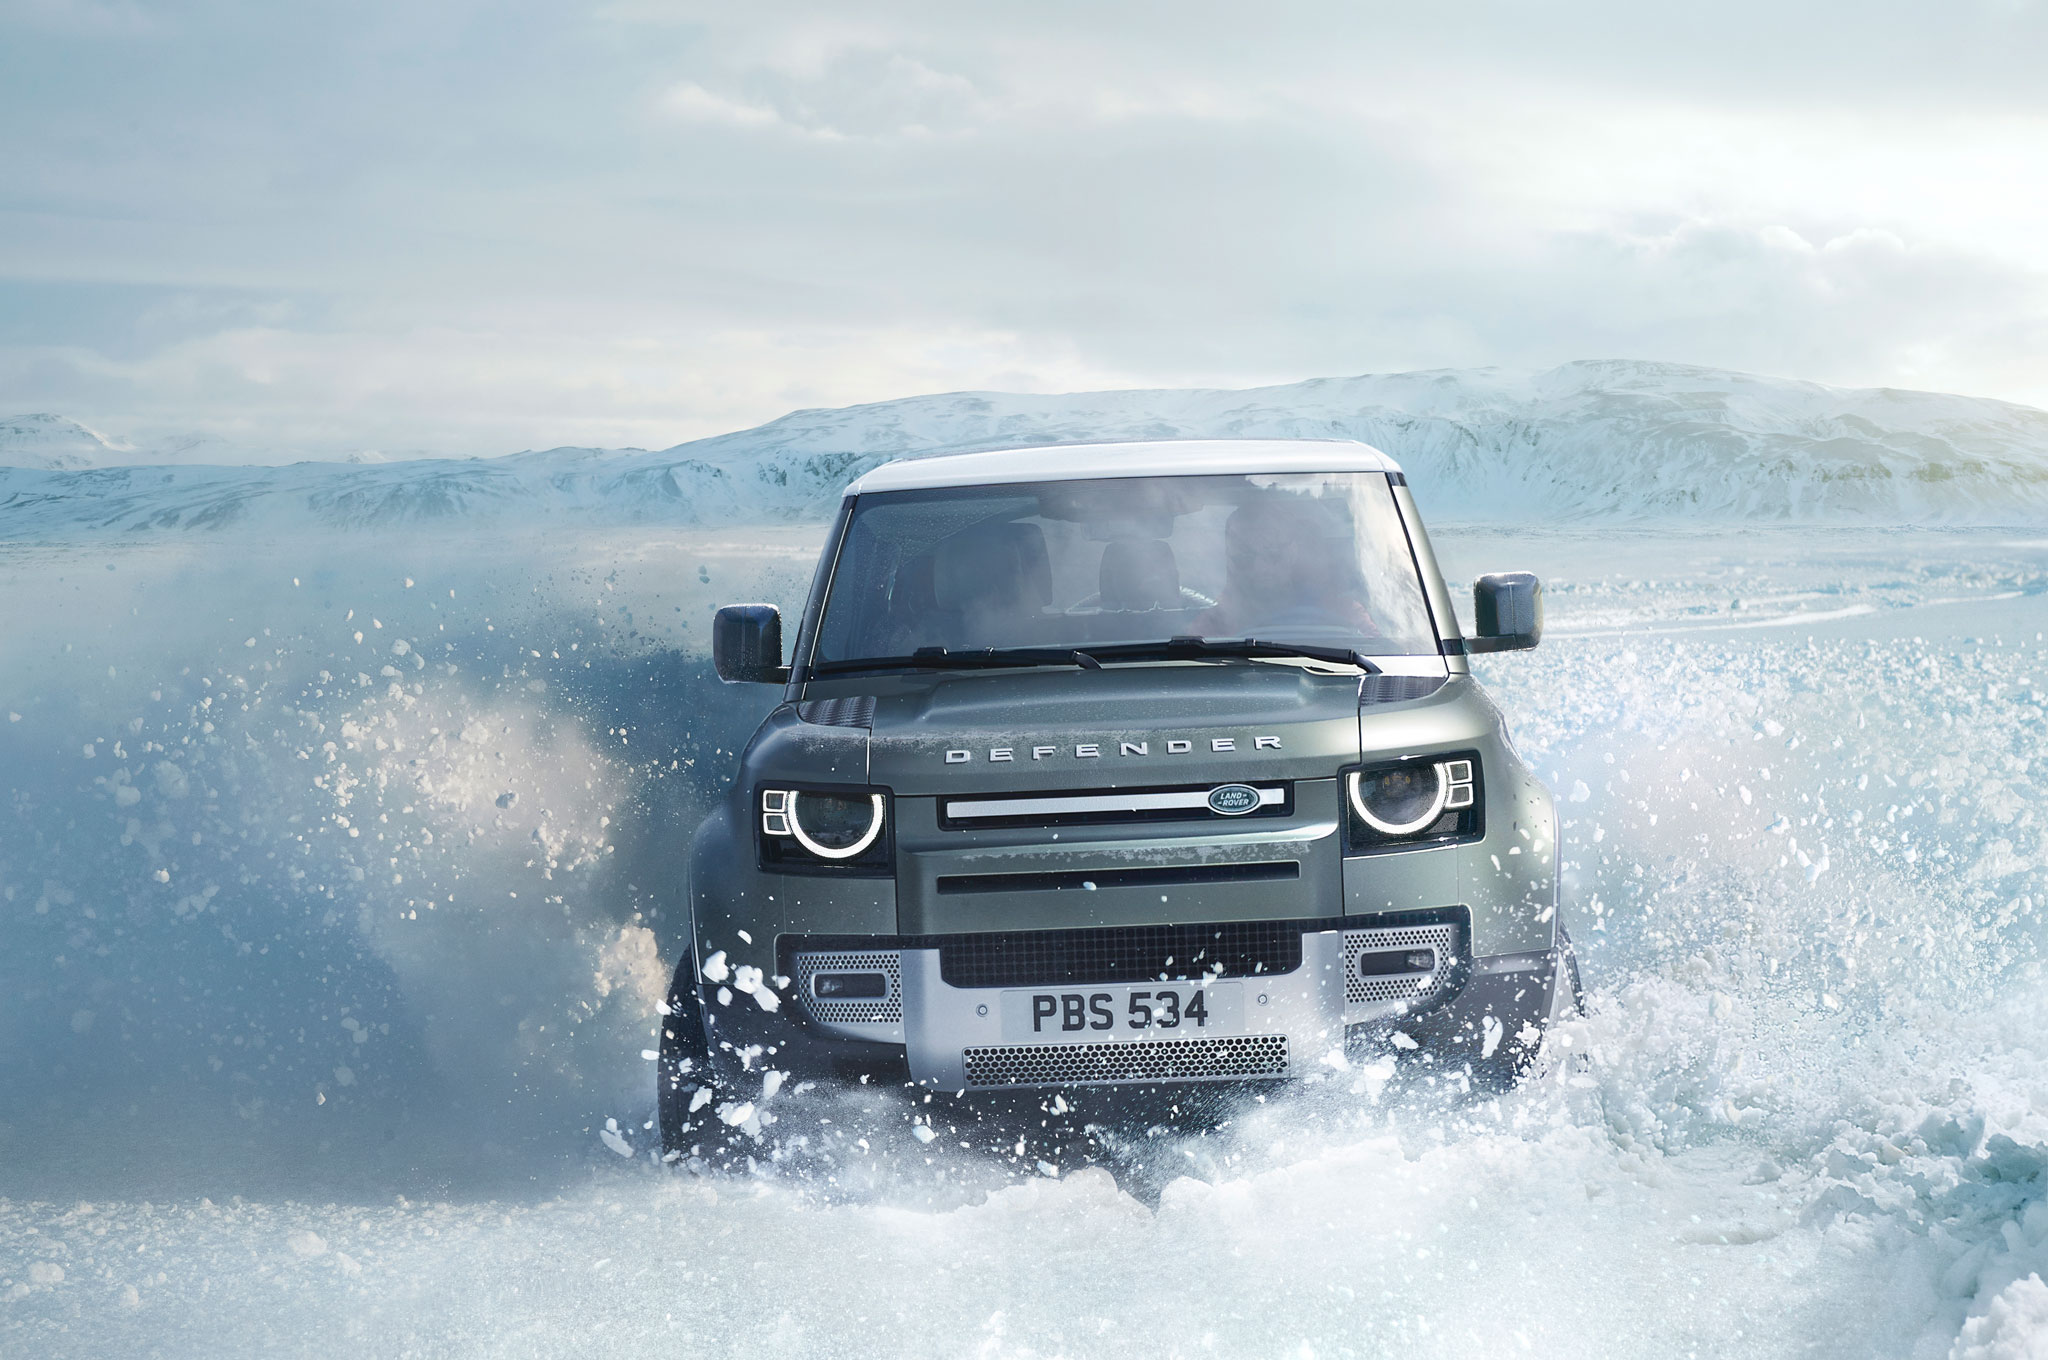 2020 land rover defender 90 off road snow 04